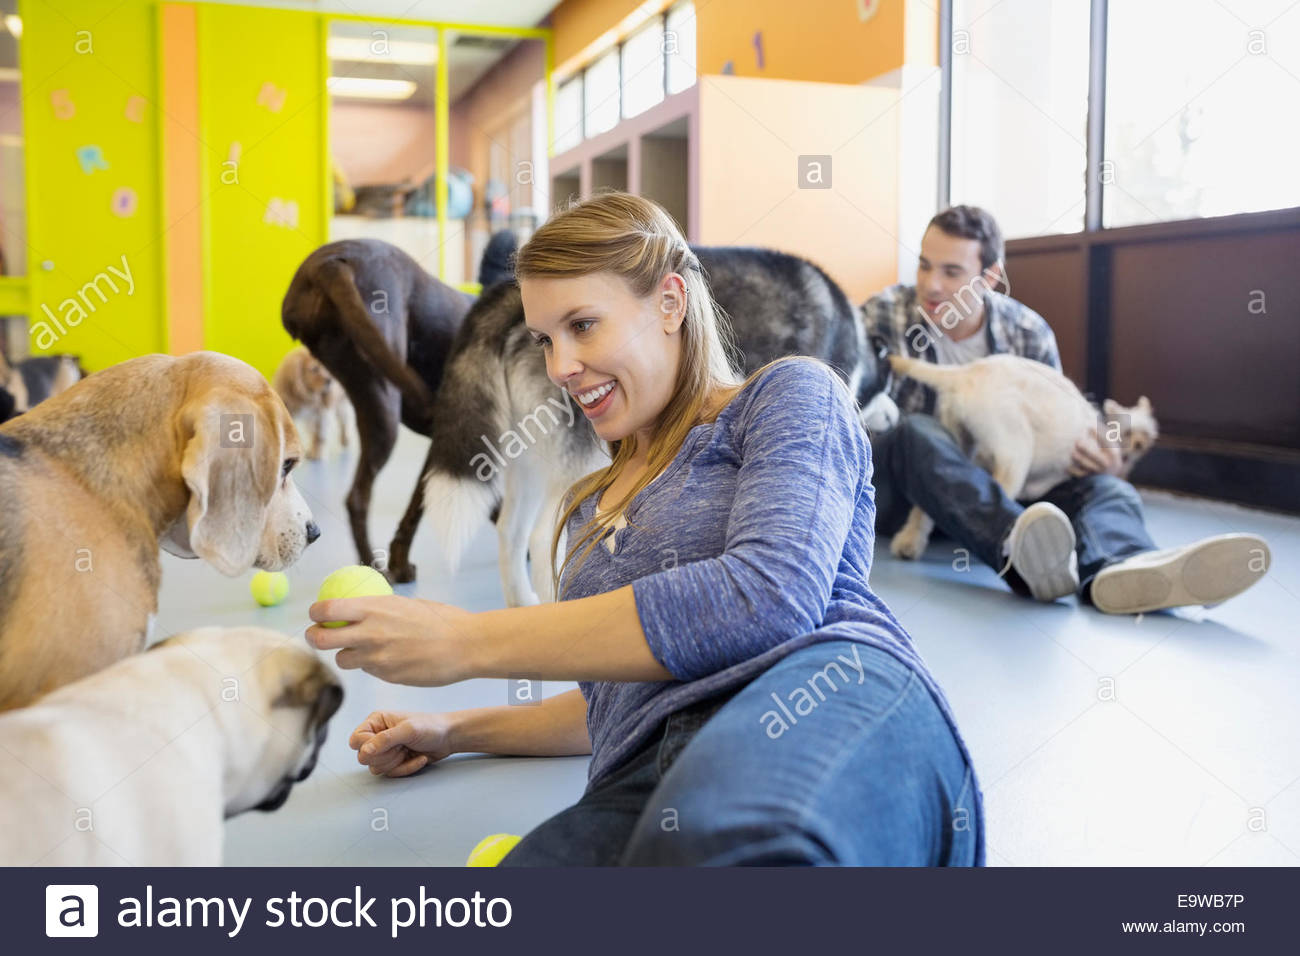 Daycare owner with tennis ball playing with dogs - Stock Image